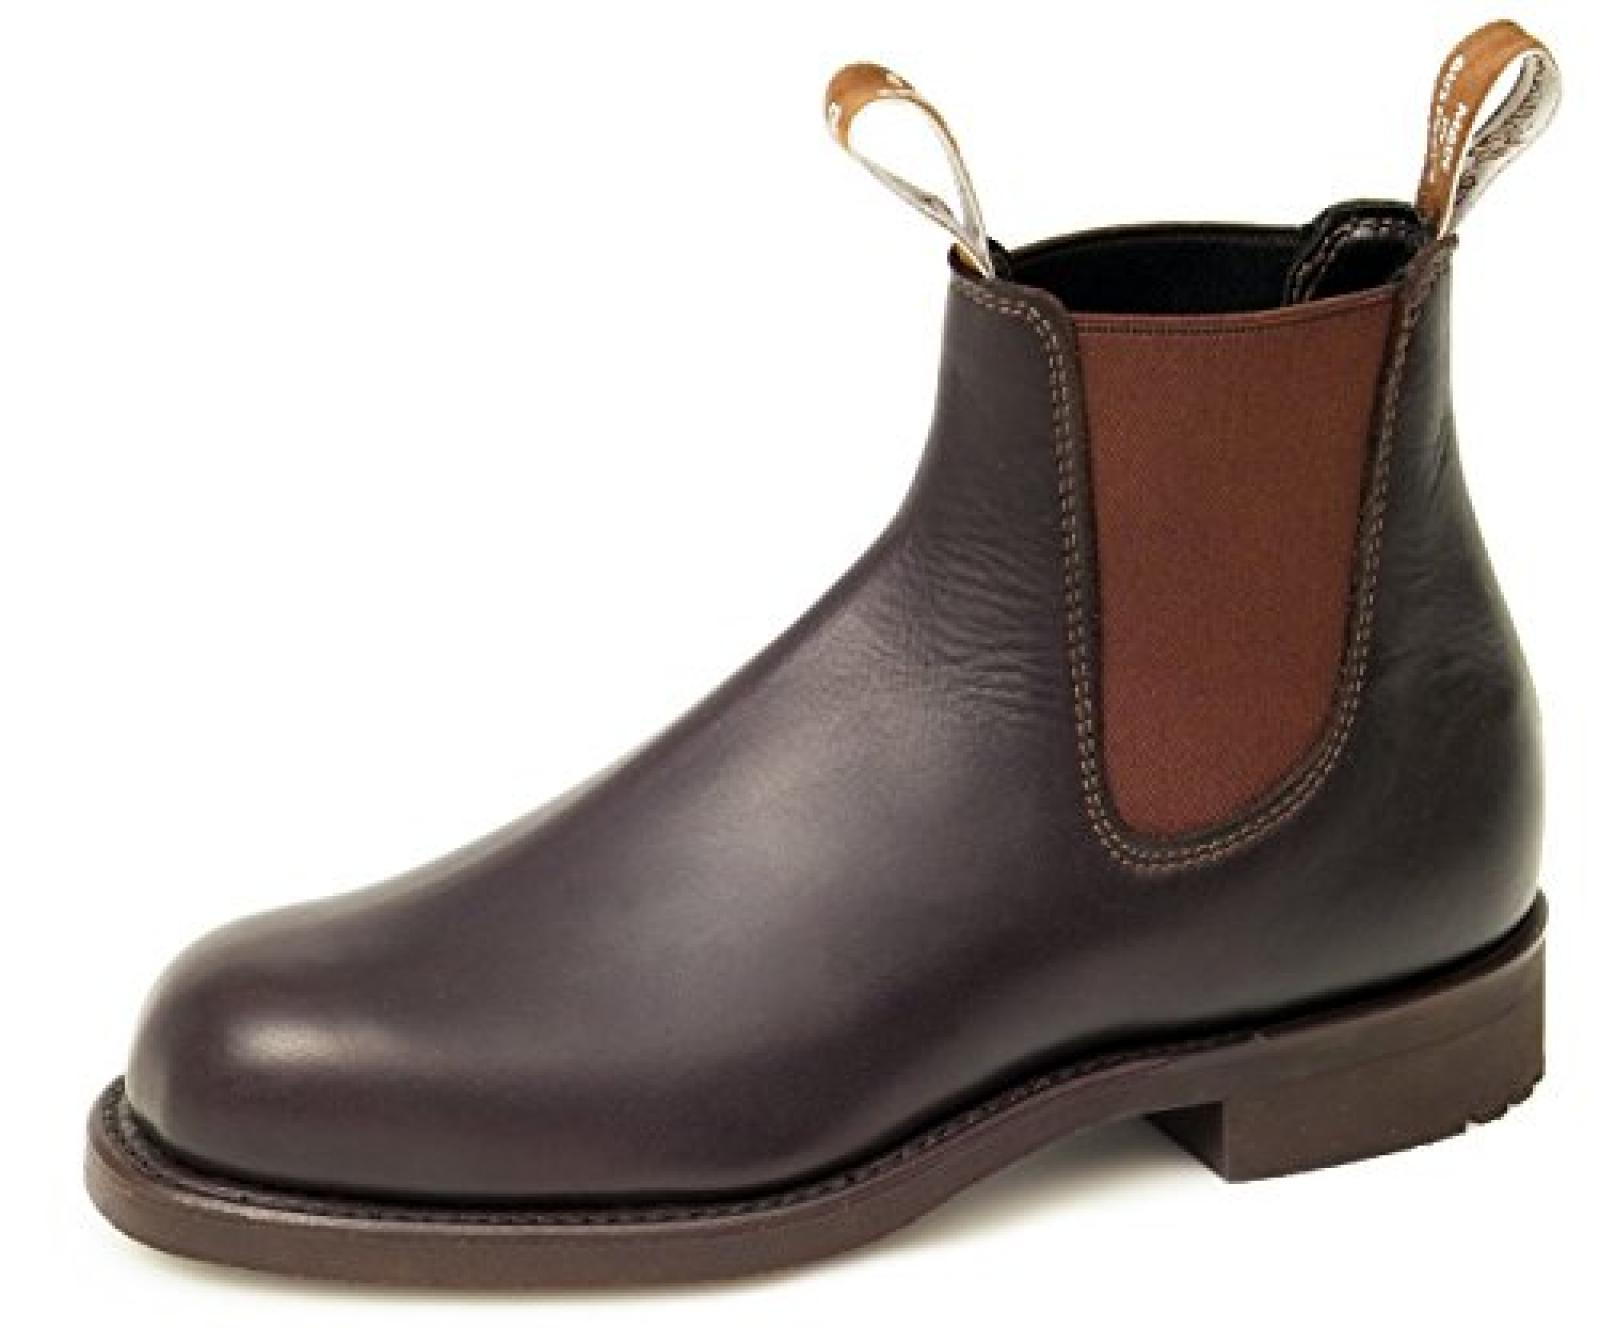 R.M. Williams Gardener Chelsea Boots Brown Australien (H)